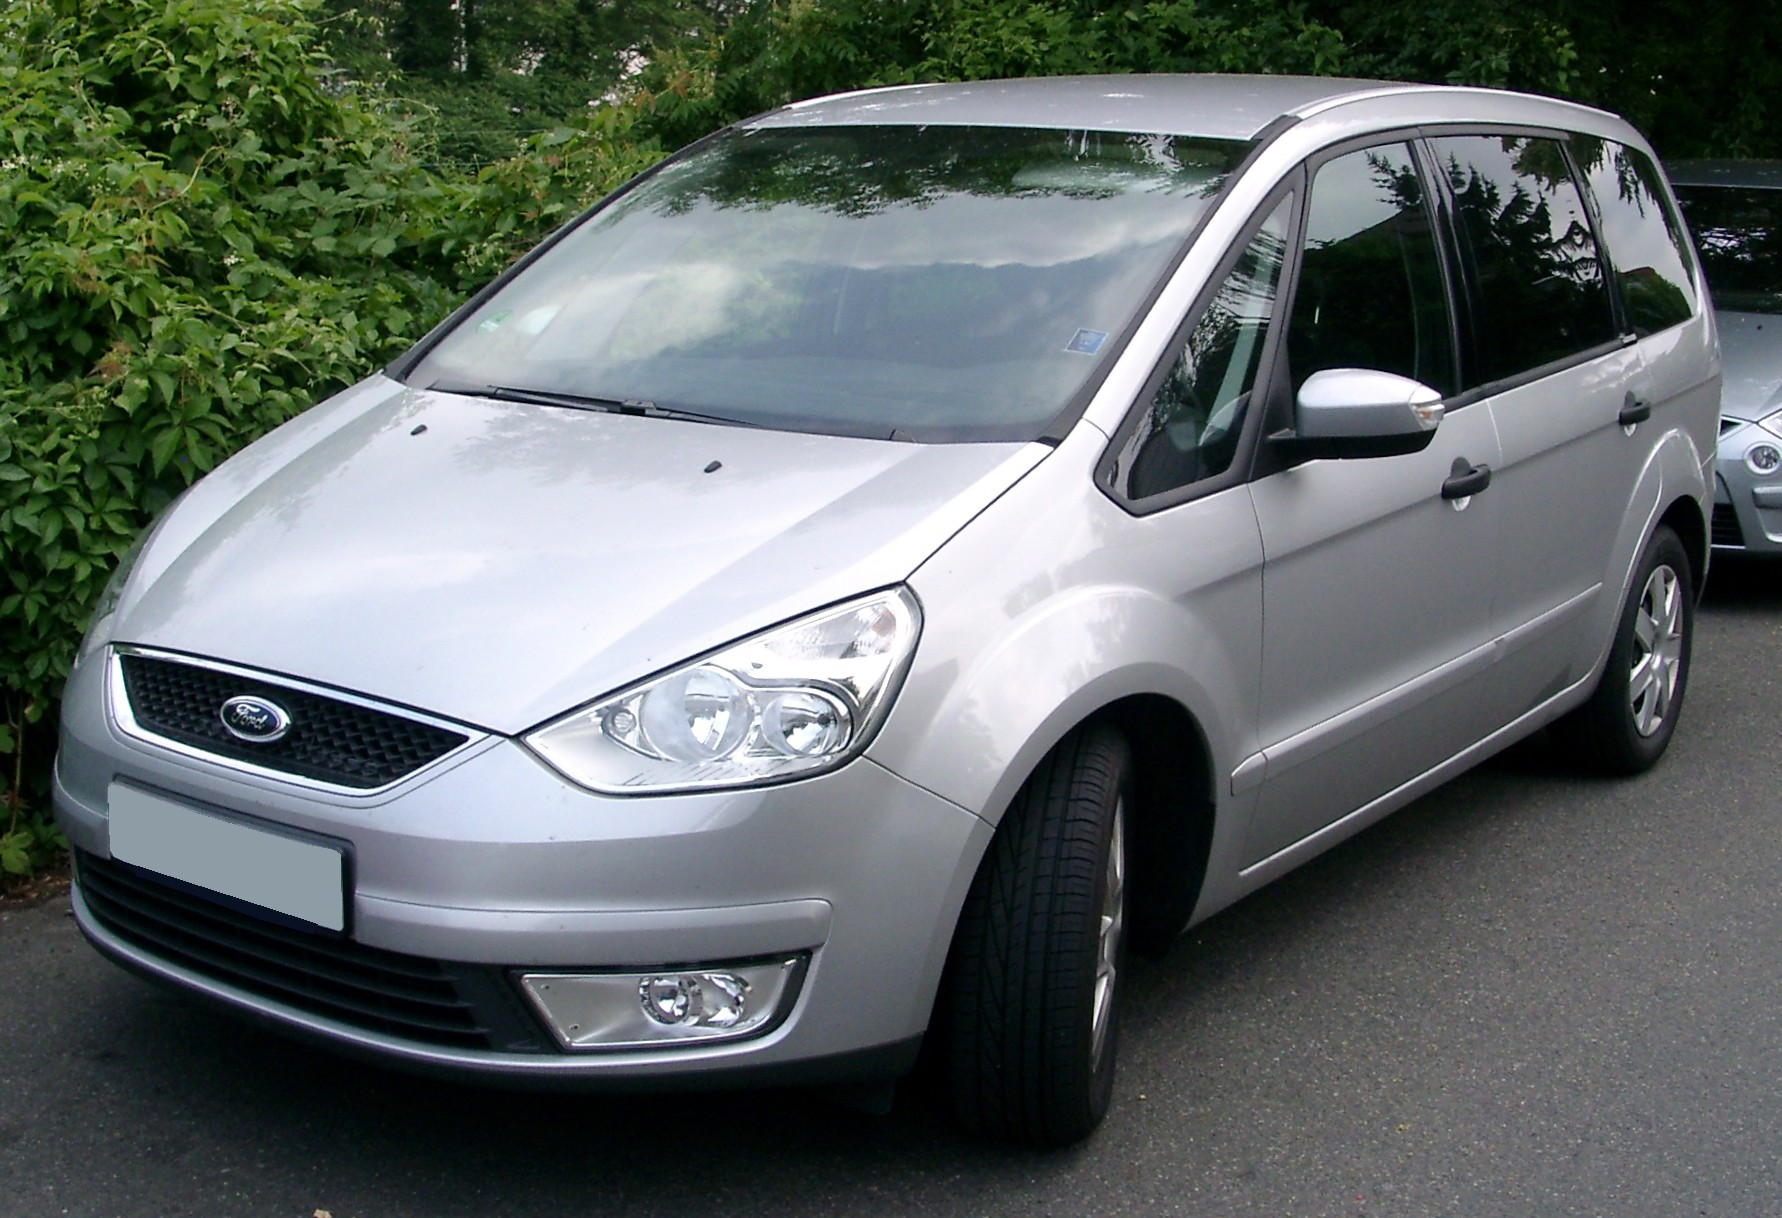 Ford Galaxy Keeping Families Together #1